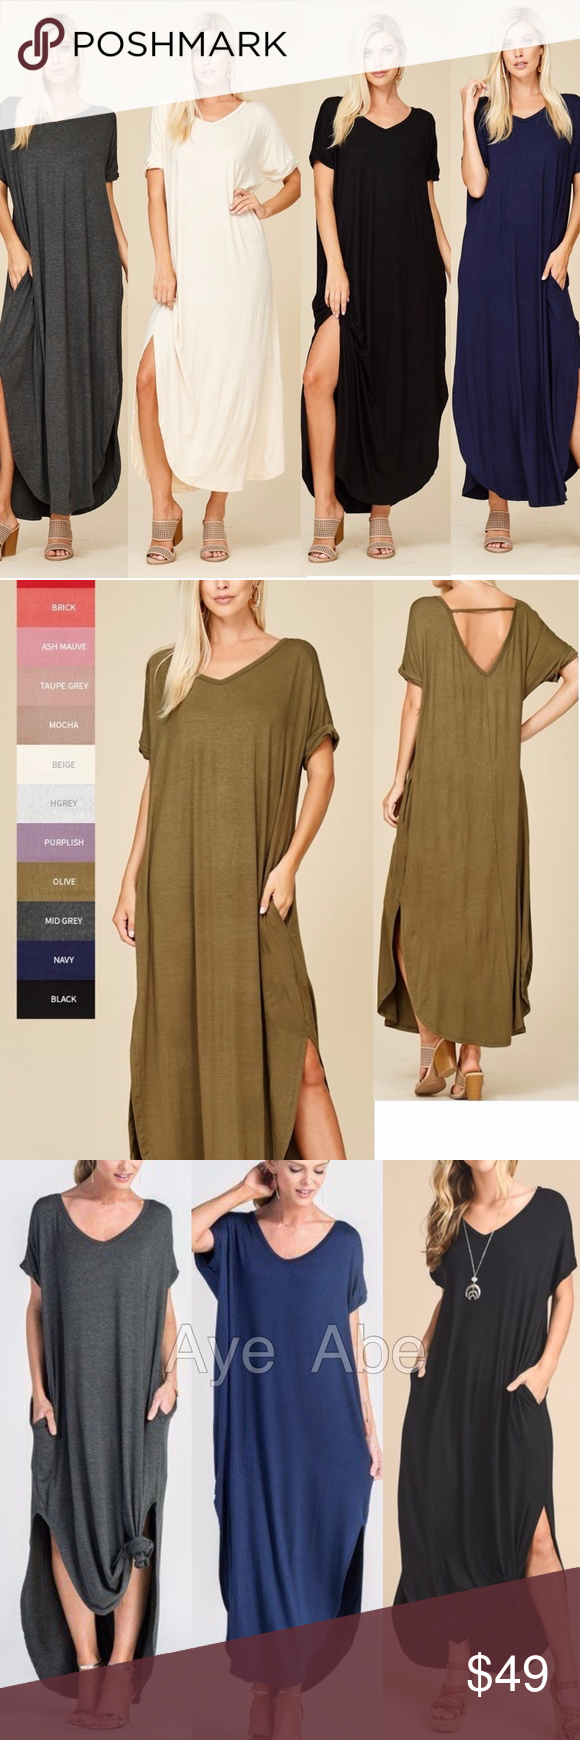 de5b7def54 Oversized loose fit slit long maxi dress pockets Over sized loose fit slit long  maxi dress pockets New boho chic maxi dress.Super comfy.